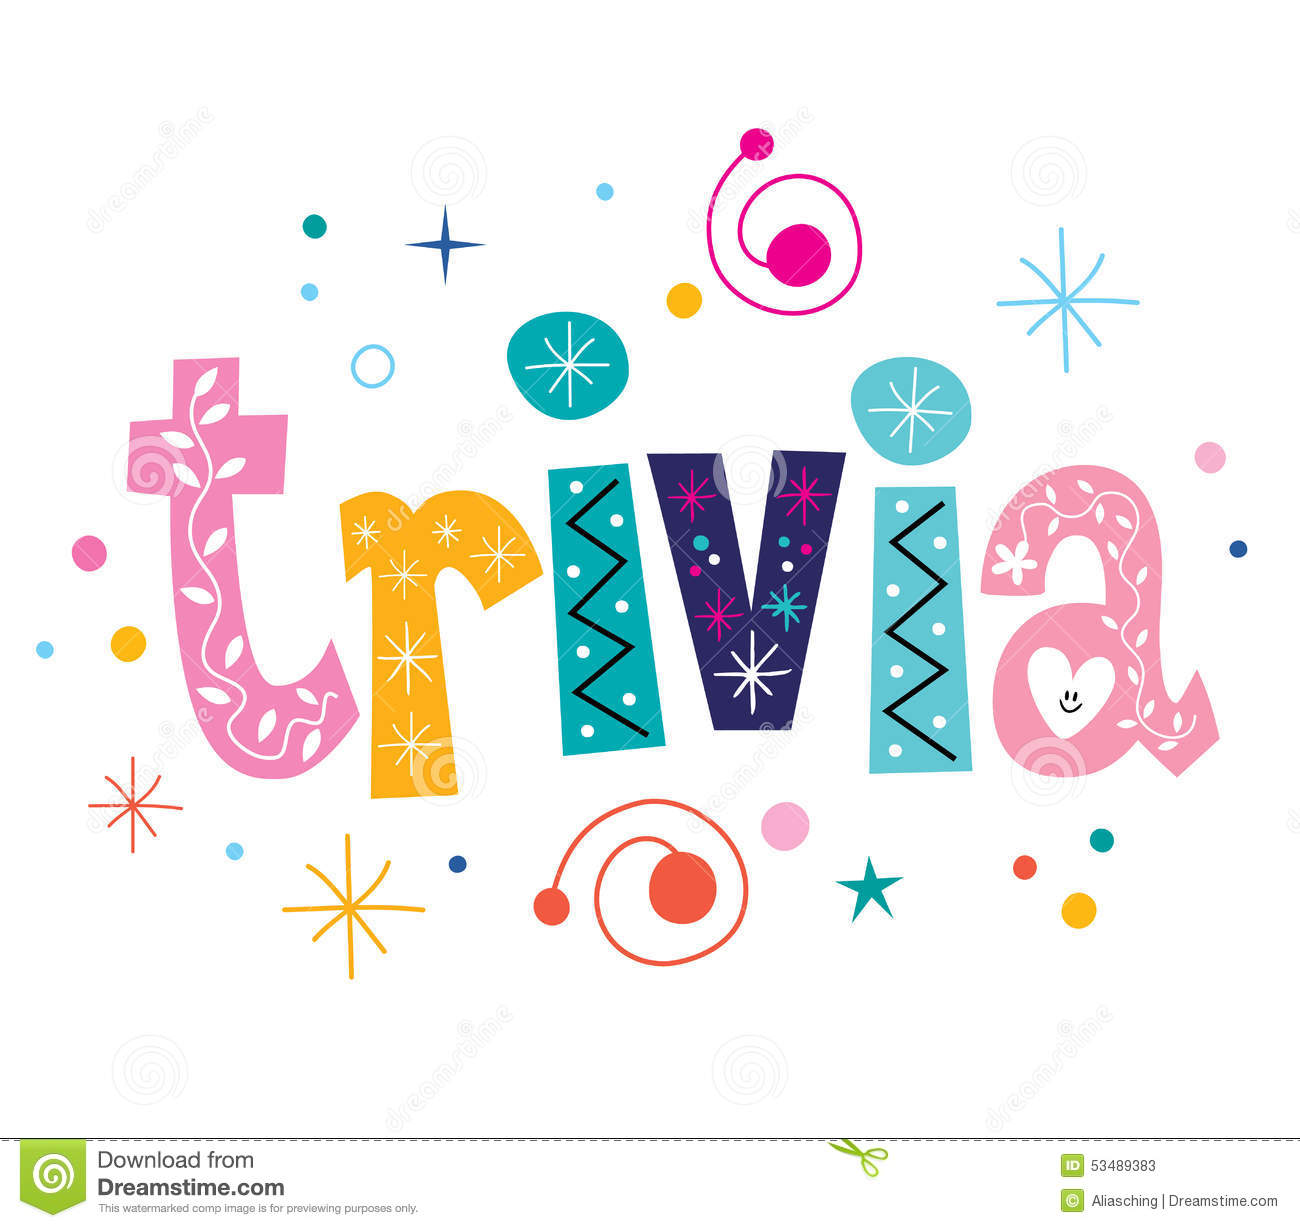 Trivia Clipart Group with 73+ items.